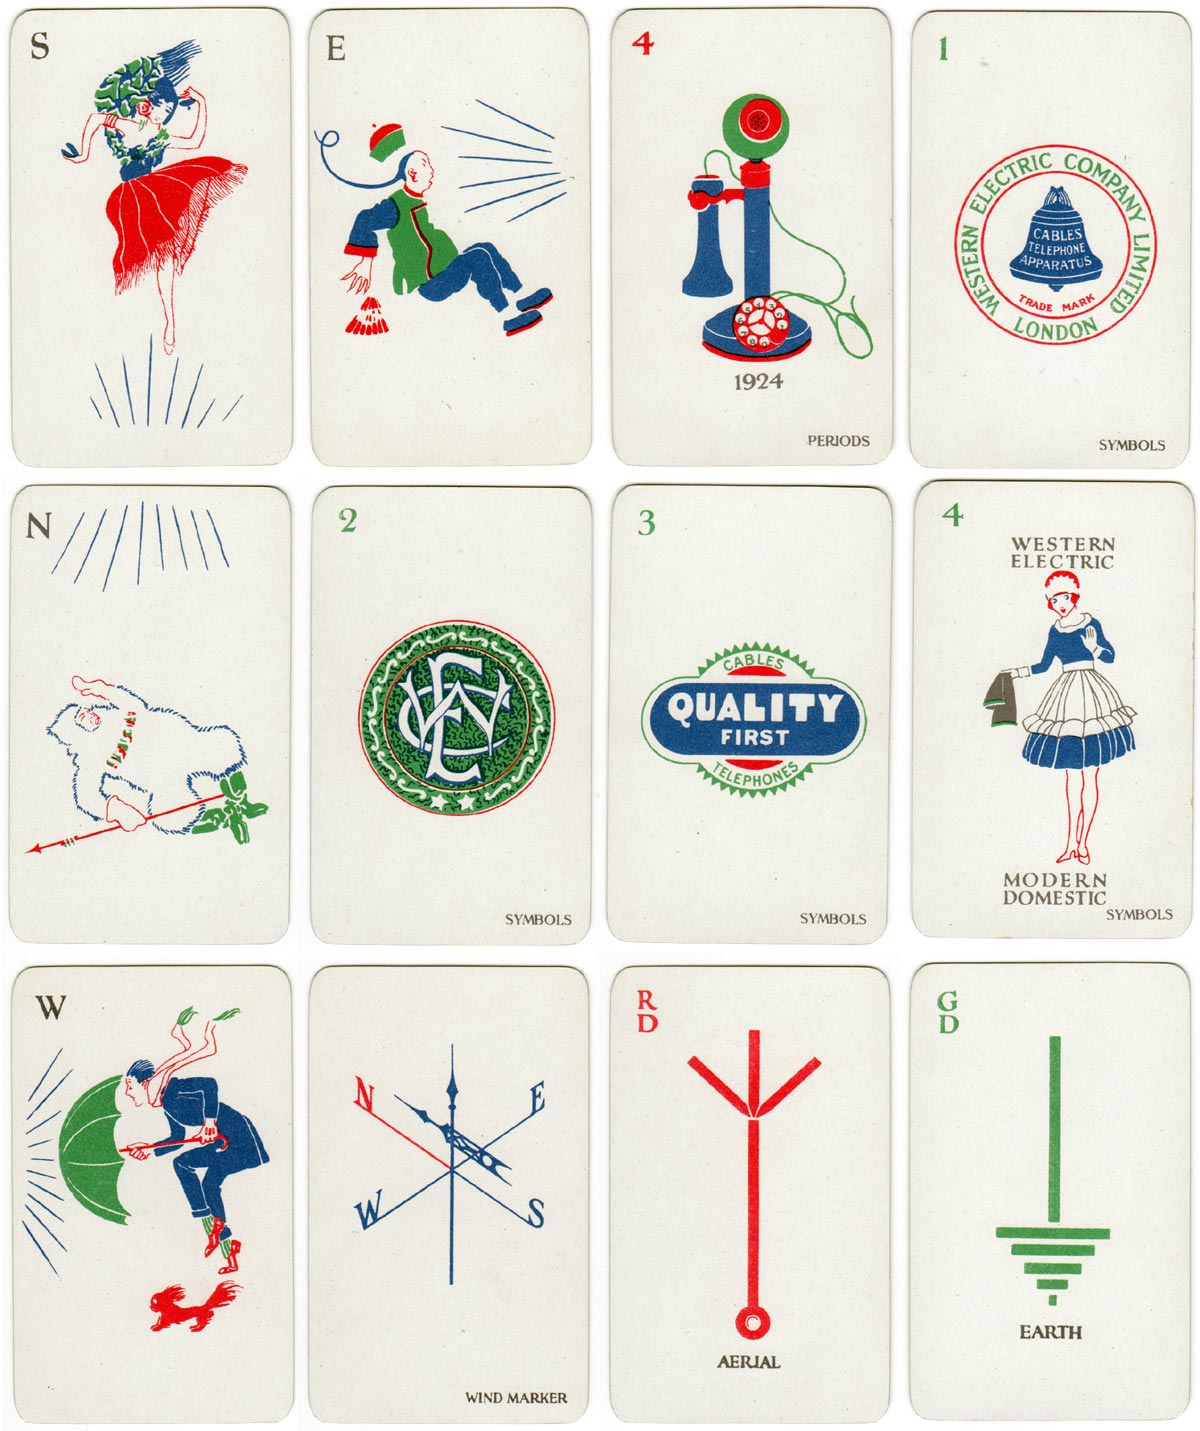 Cards from 'Electrical Mah Jong' produced by De La Rue for The Western Electric Company Ltd in 1924